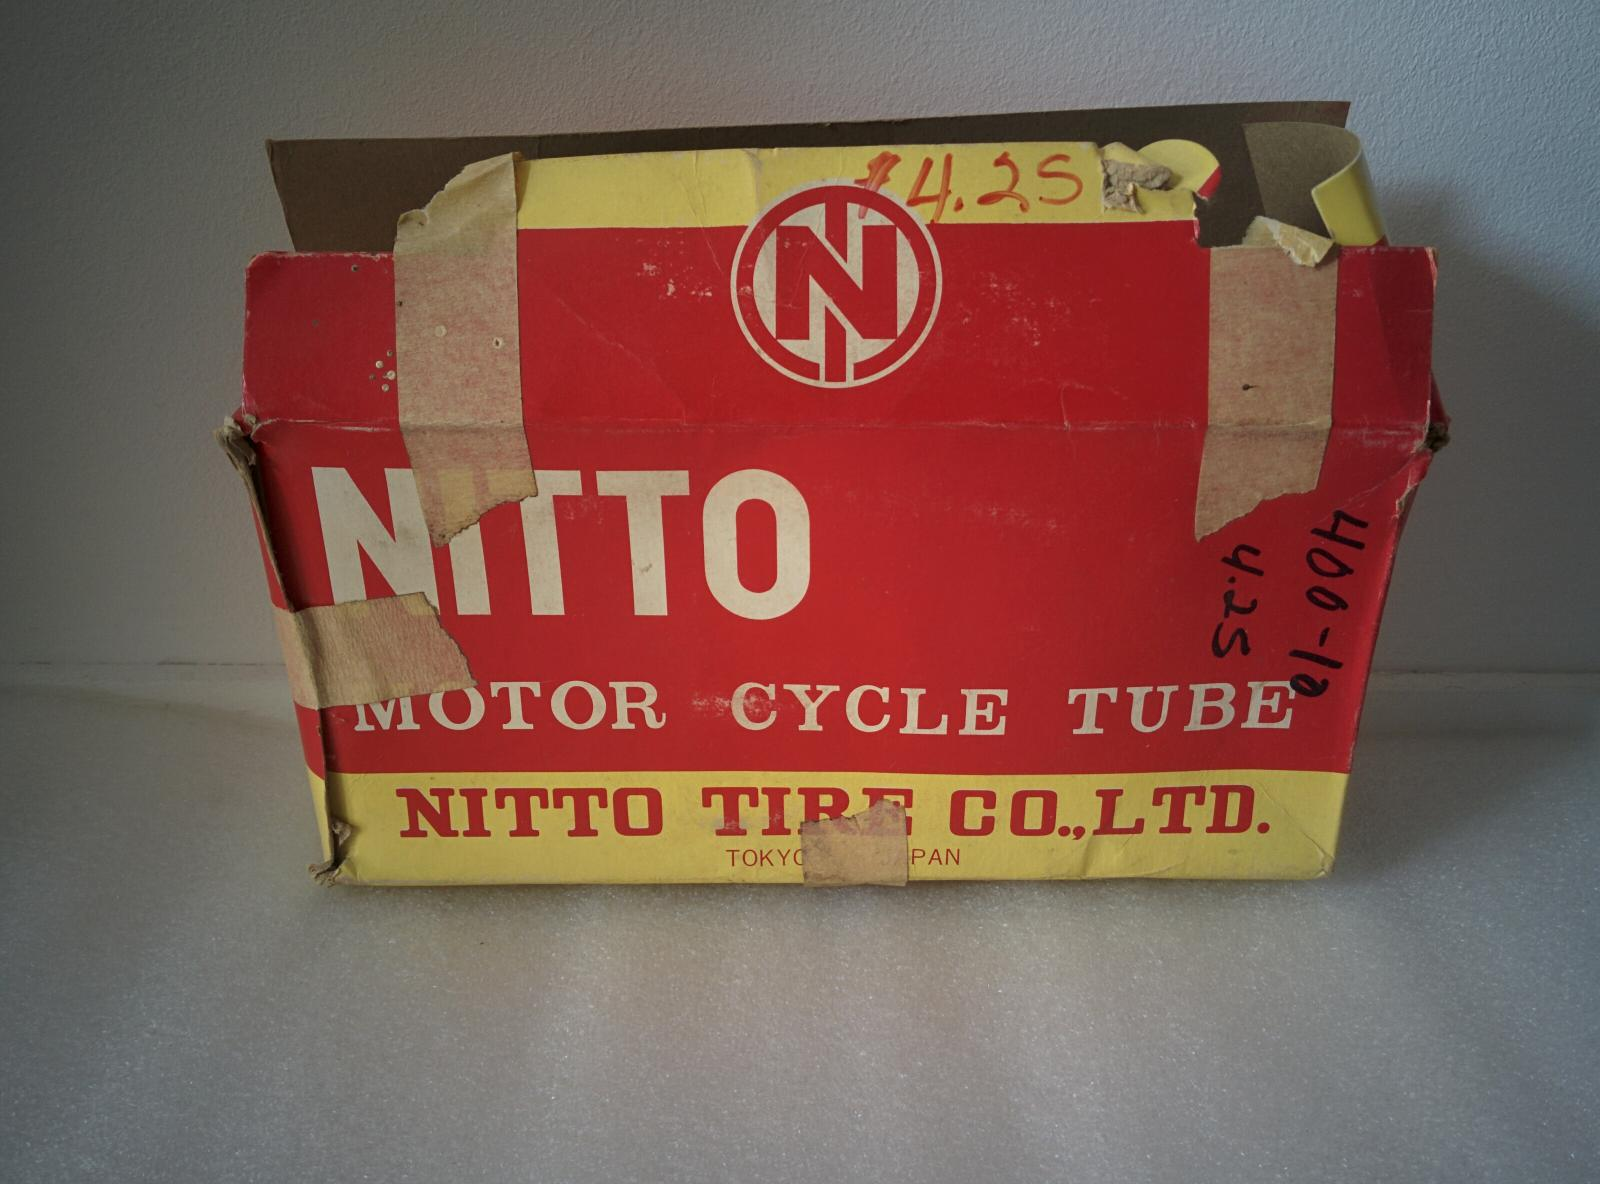 Rare Nos Nitto 400 10 Inner Tube For Honda Ct70 Ch250 Nh80 St50 1970 Parts List Usable Various Models Cf50 Please Check Pictures And Your Partslist To Make Sure Its The